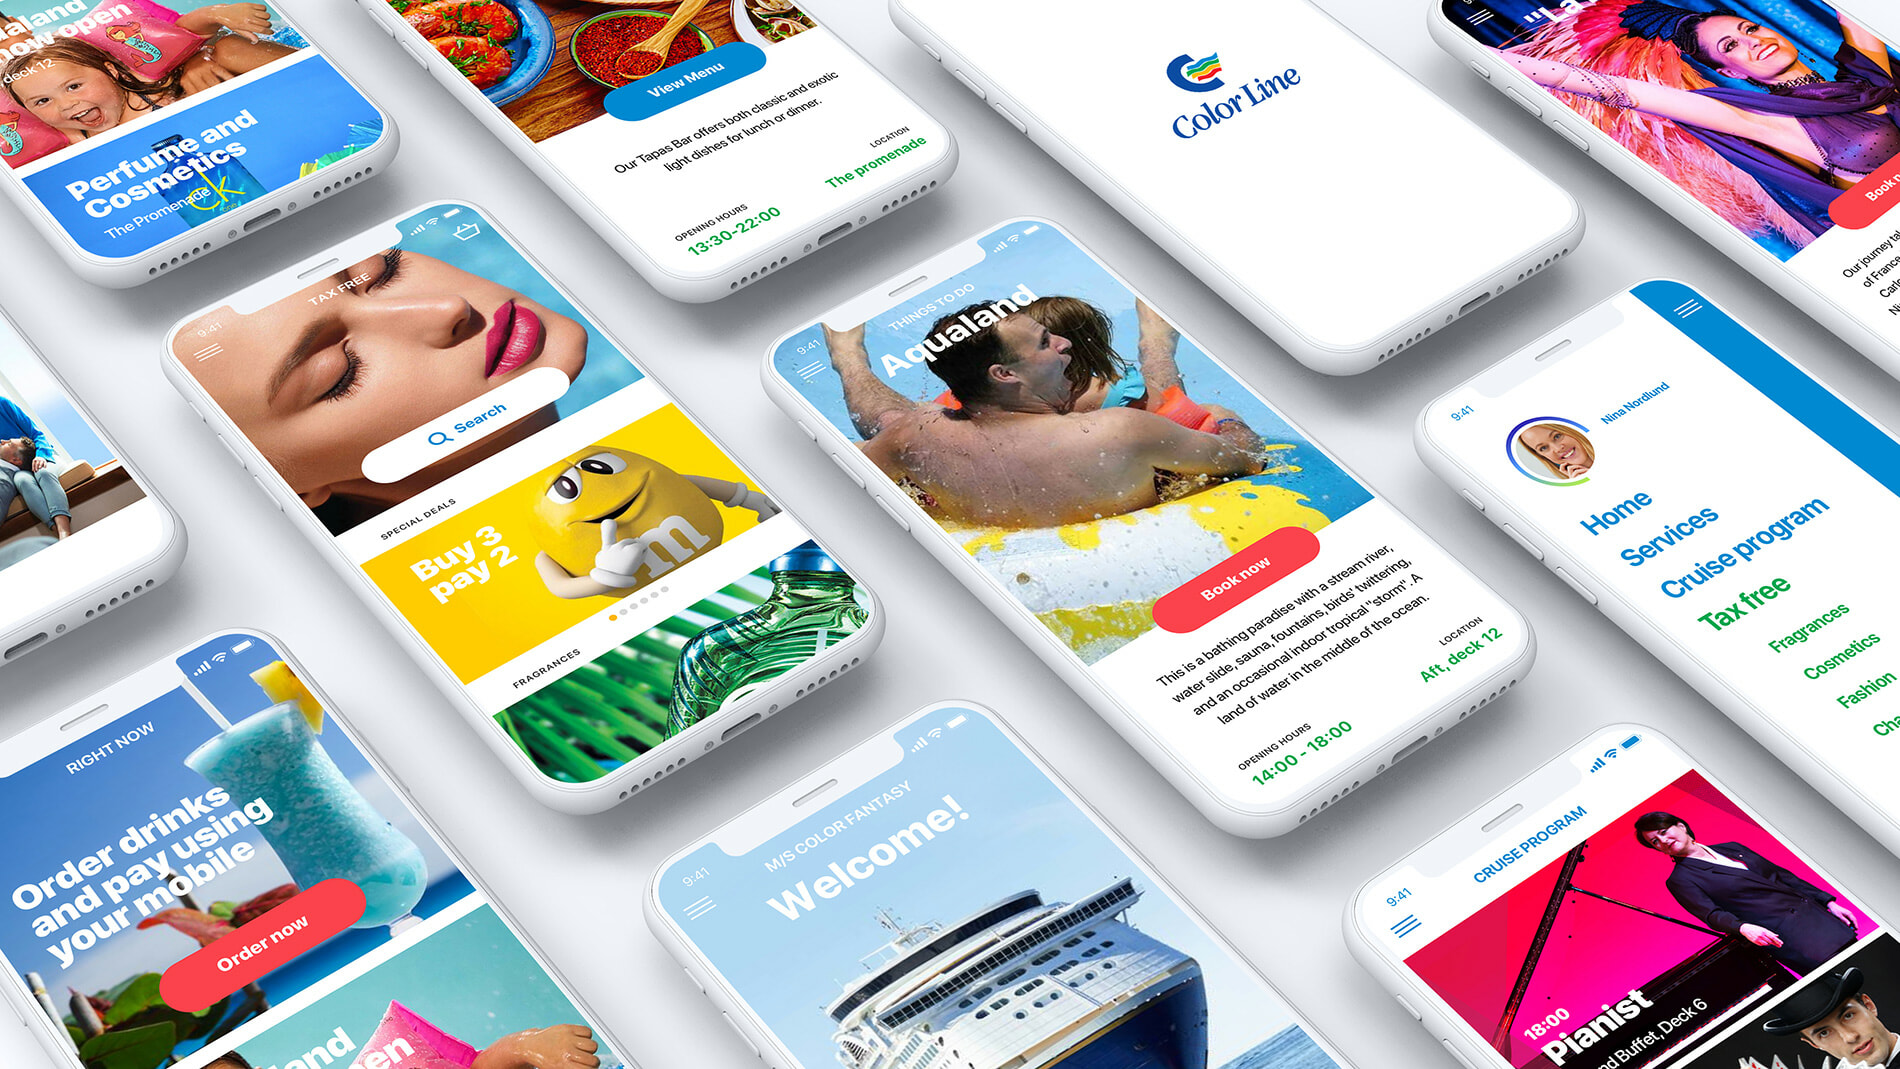 Various views of colourful look and feel of the Color Line cruise app